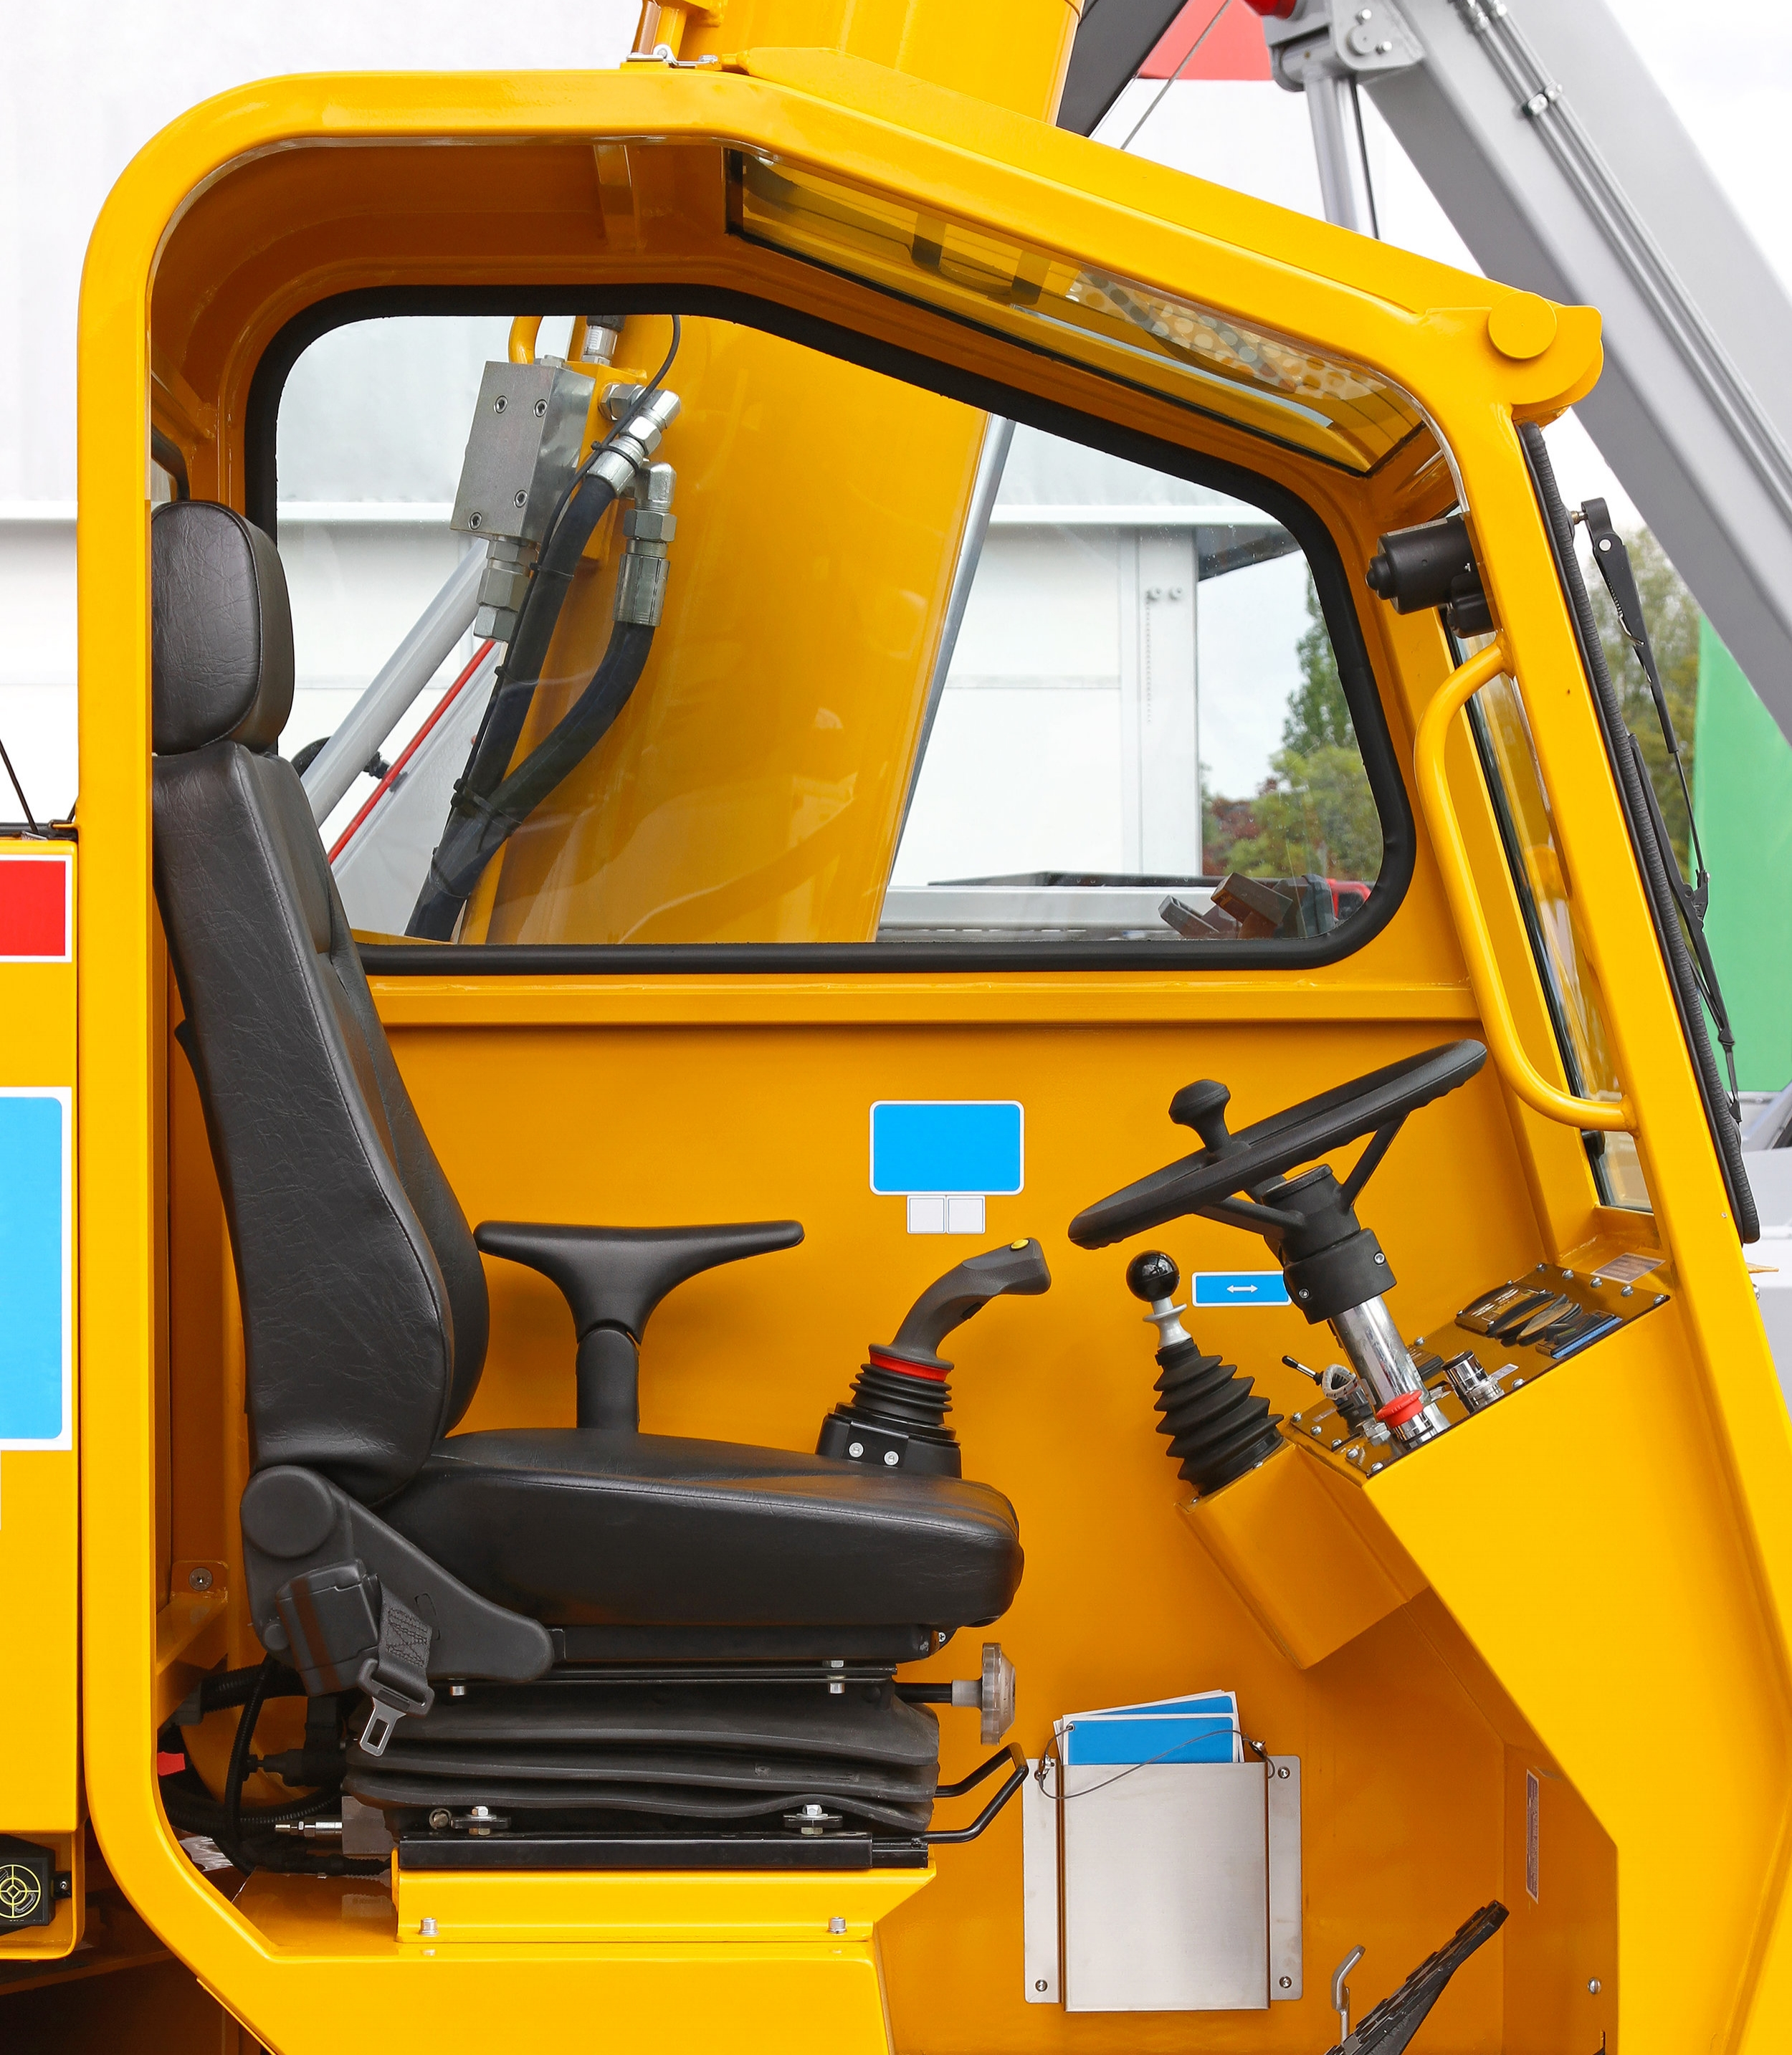 Seat Systems - Trucking, construction, and passenger vehicle seating isolators and dampers providing comfort for the long haul.